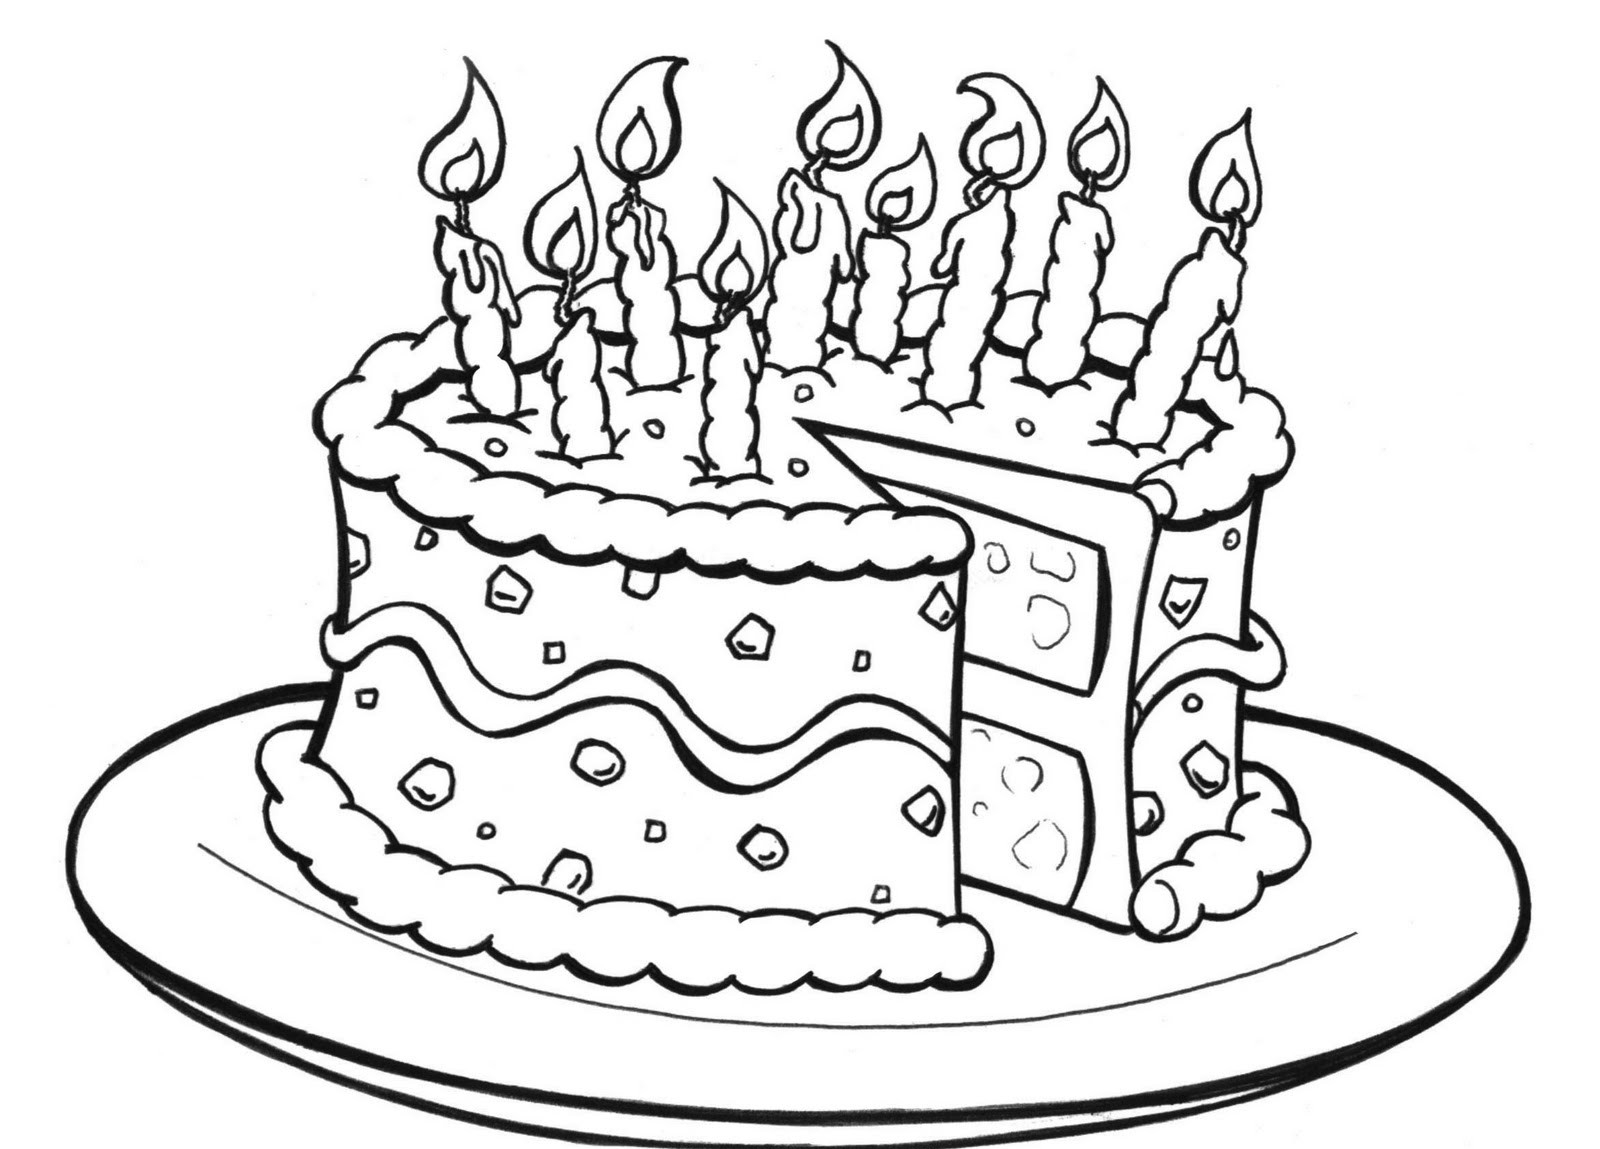 printable birthday coloring pages - birthday cake coloring pages